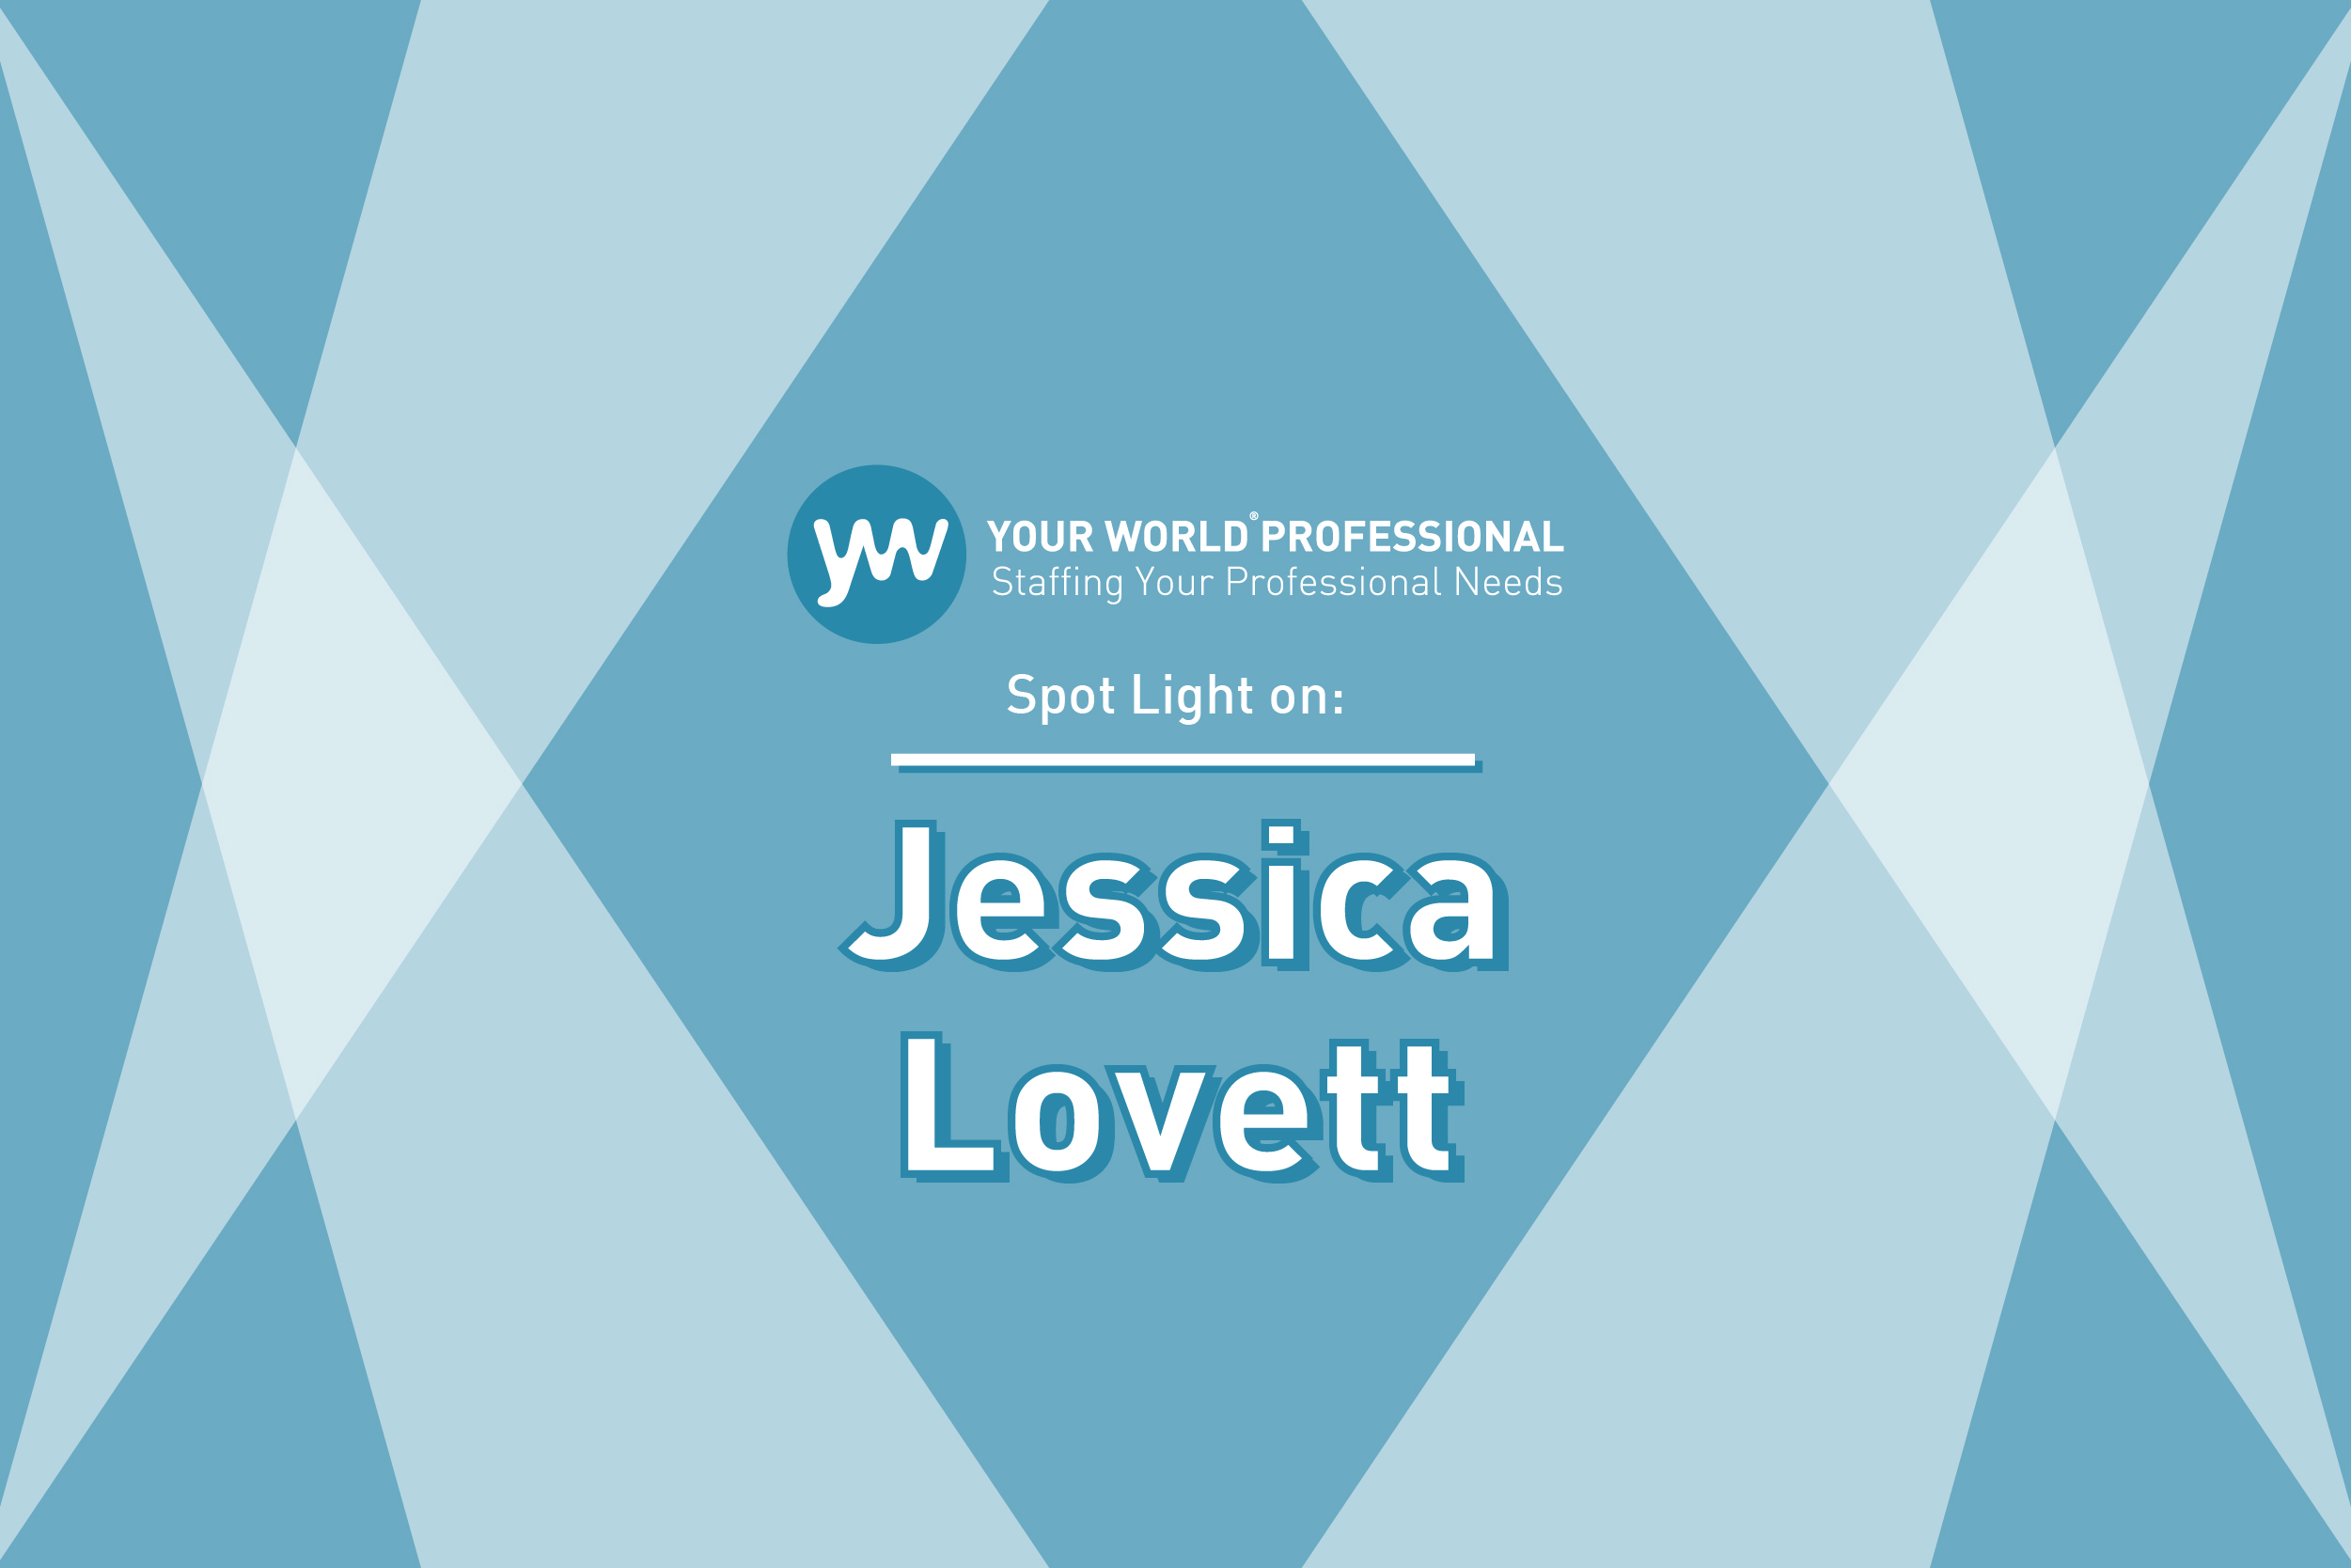 SPOTLIGHT ON...Jessica Lovett